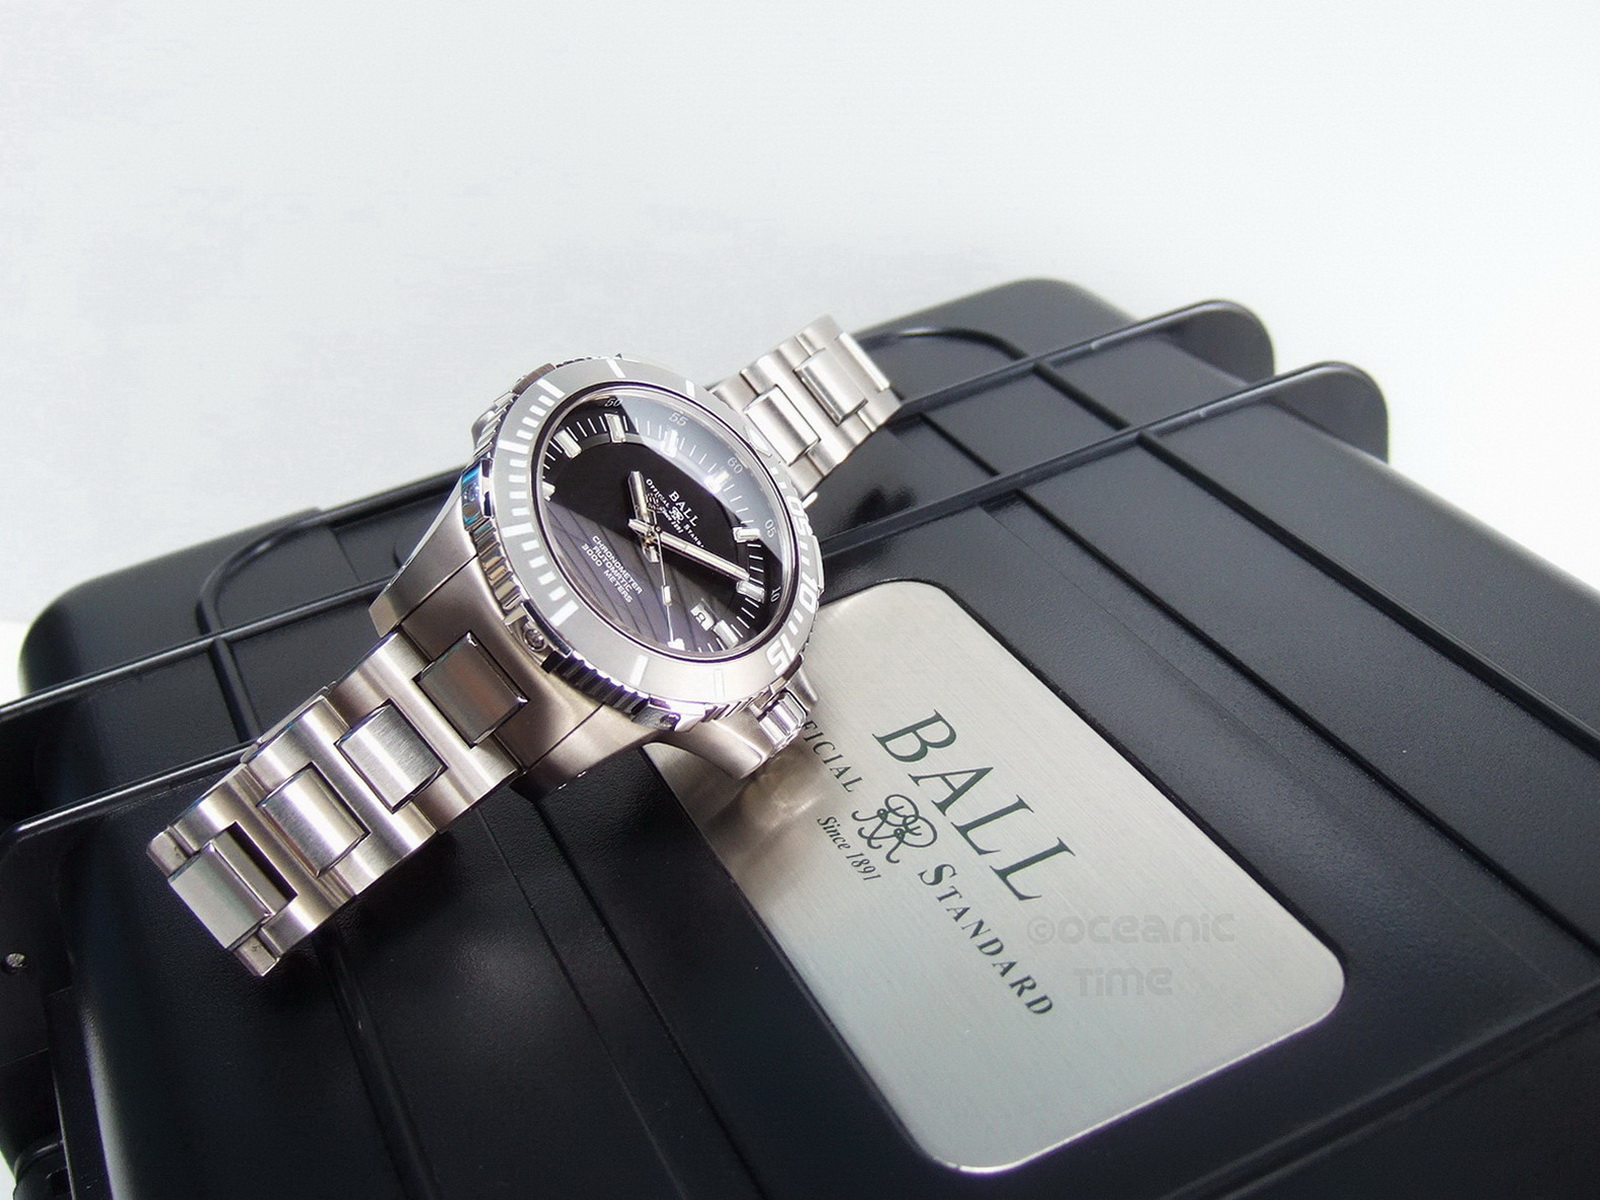 Oceanictime Ball Watch Co Engineer Hydrocarbon Deepquest